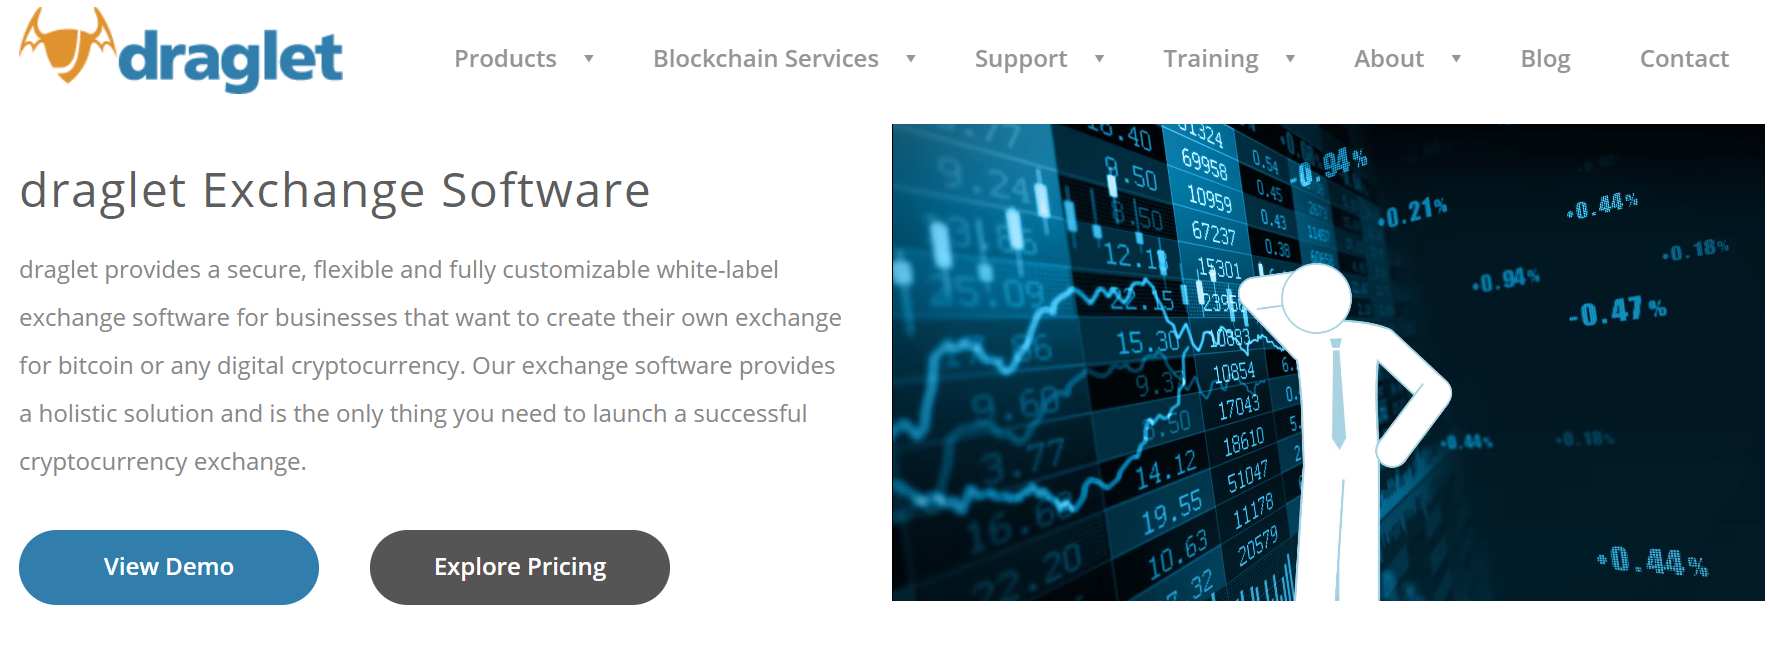 Draglet Top Crypto Exchange Software Solutions